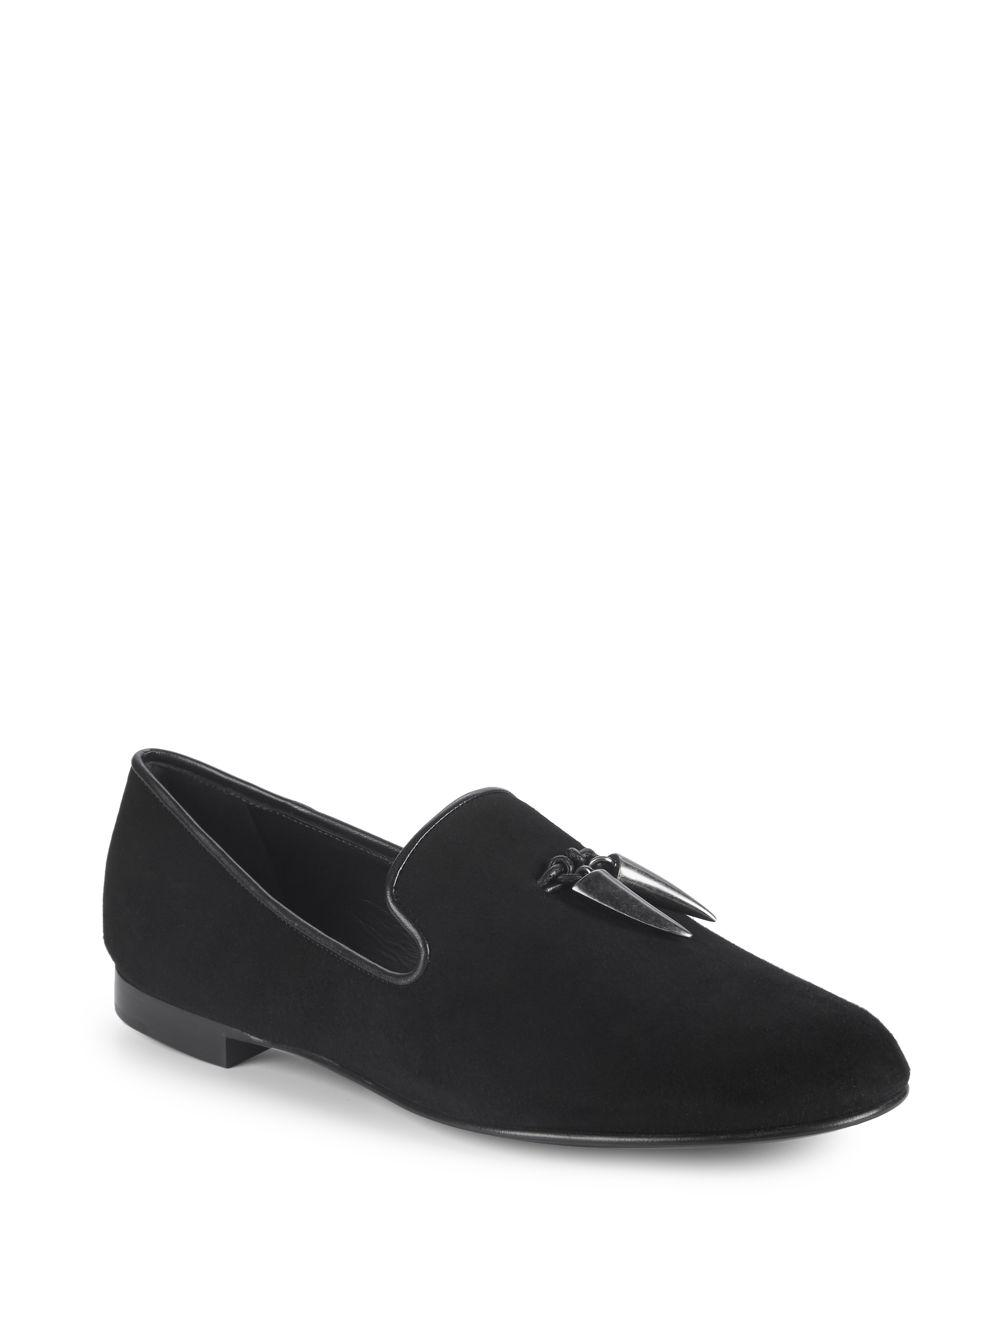 Giuseppe ZanottiSuede loafers